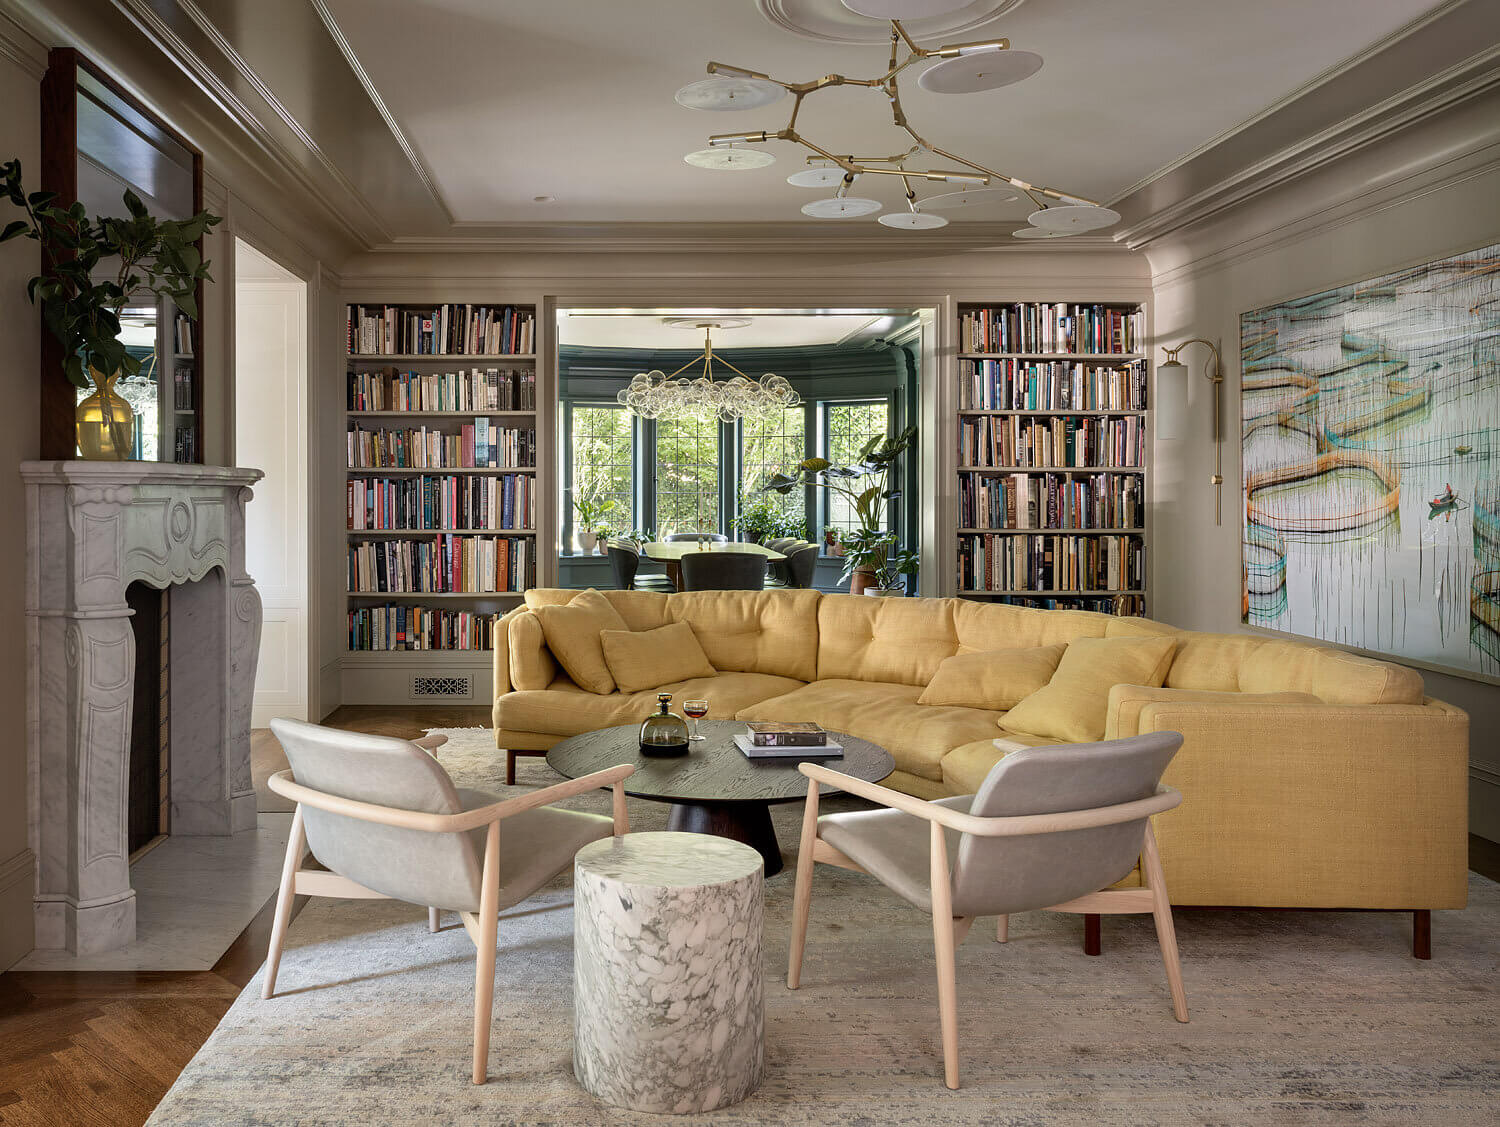 A 1920s Portland Home Designed by Jessica Helgerson